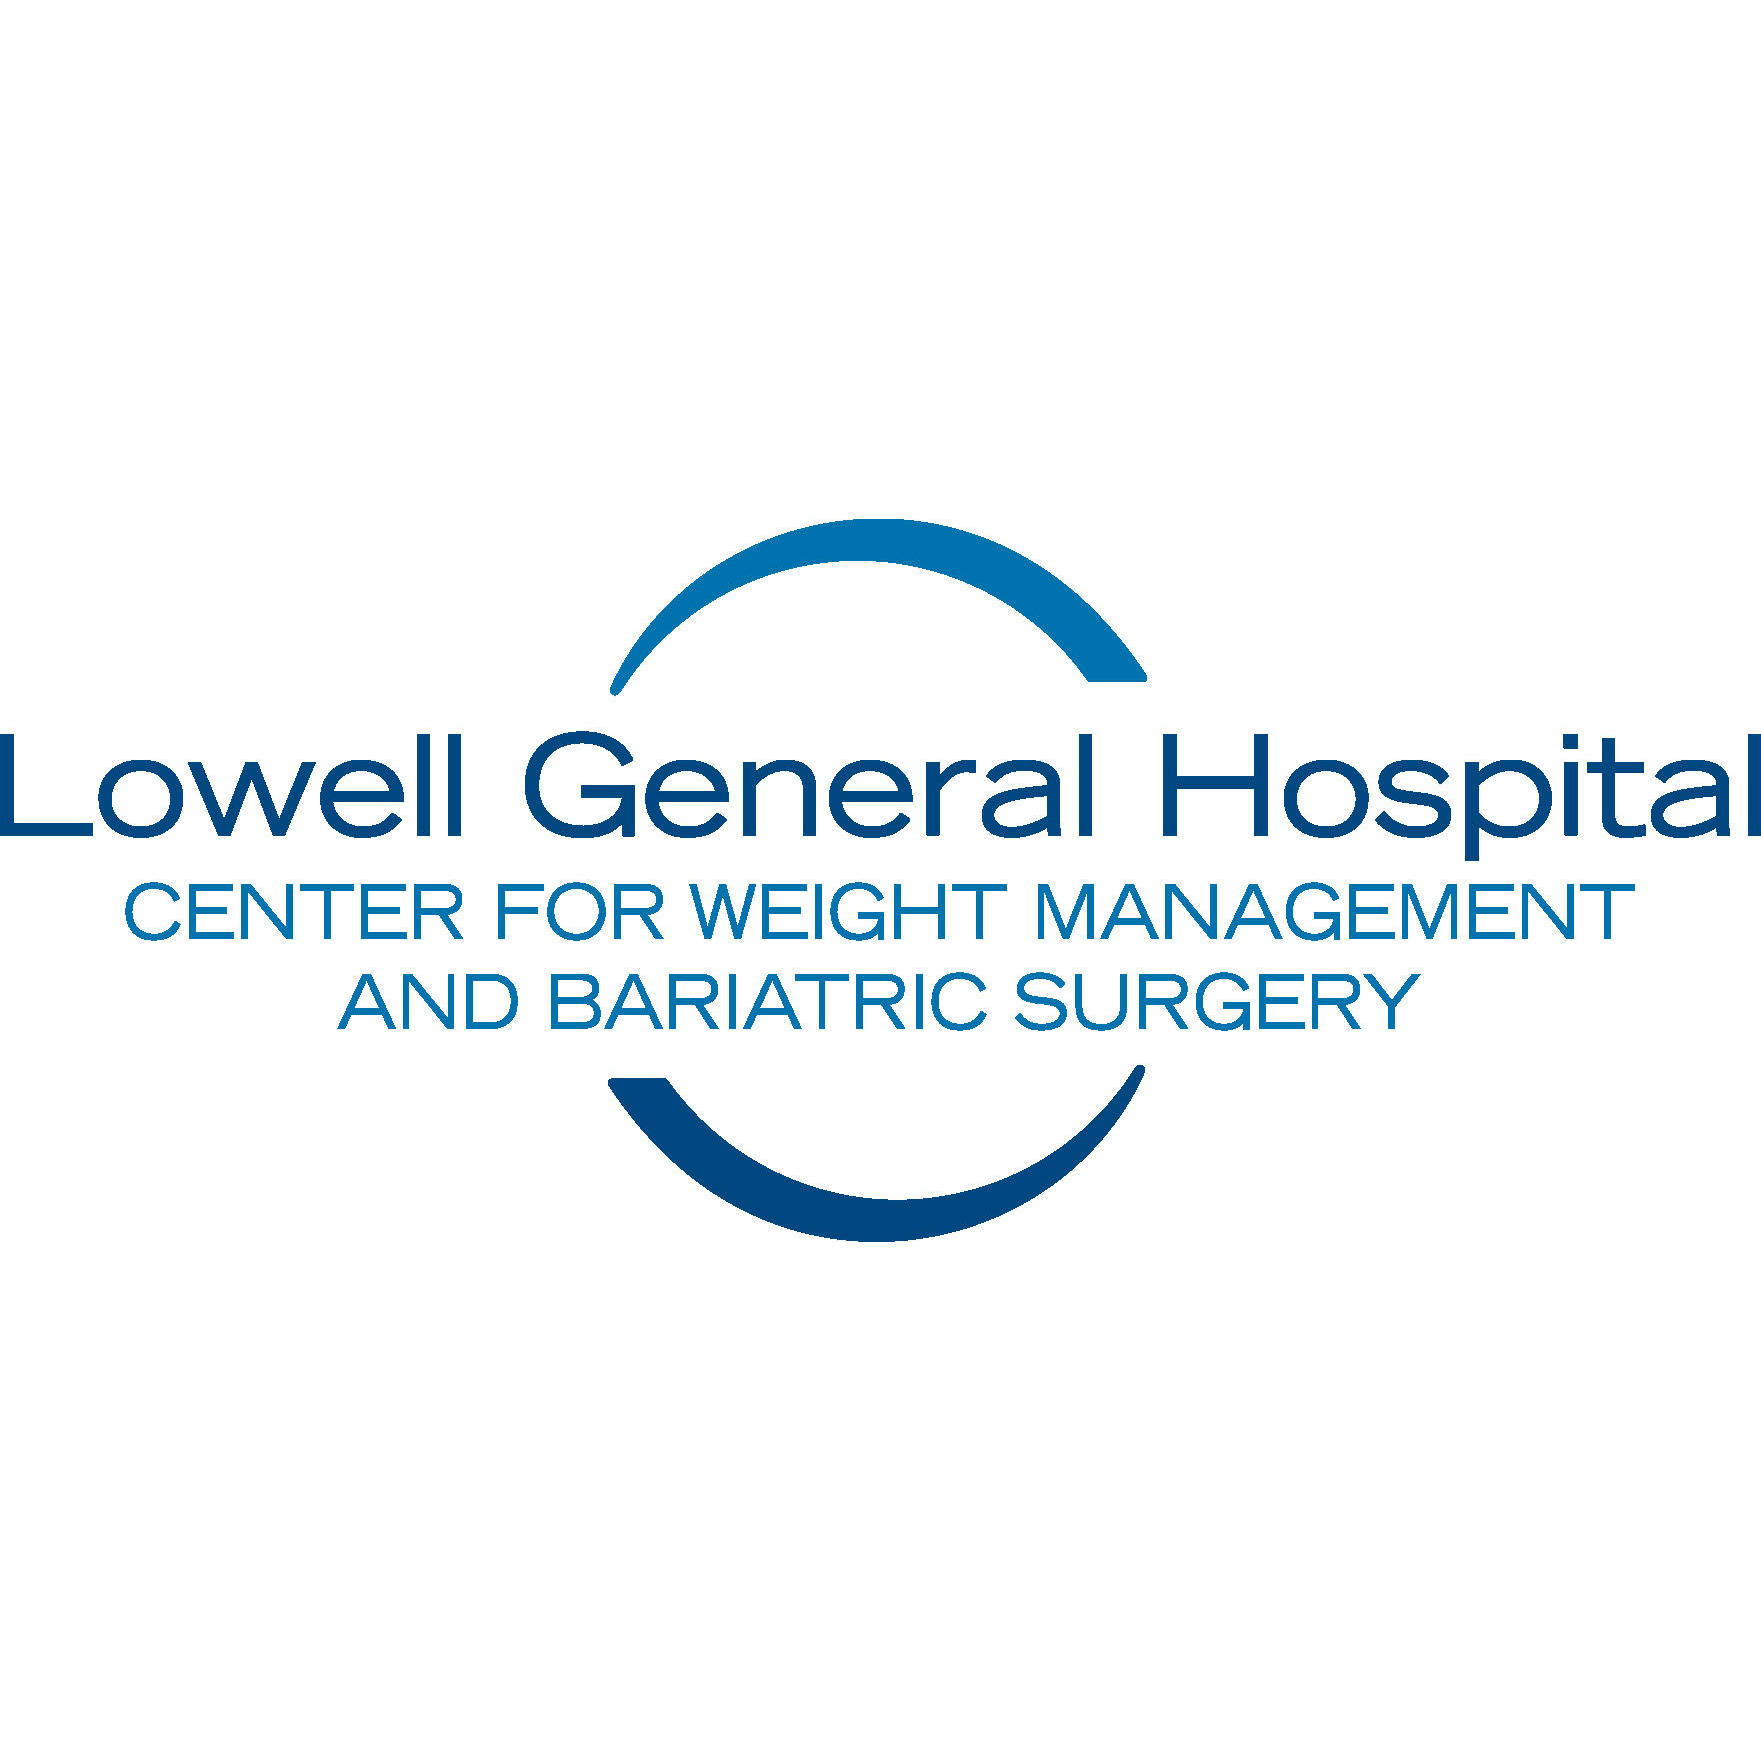 Lowell General Hospital Center for Weight Management and Bariatric Surgery